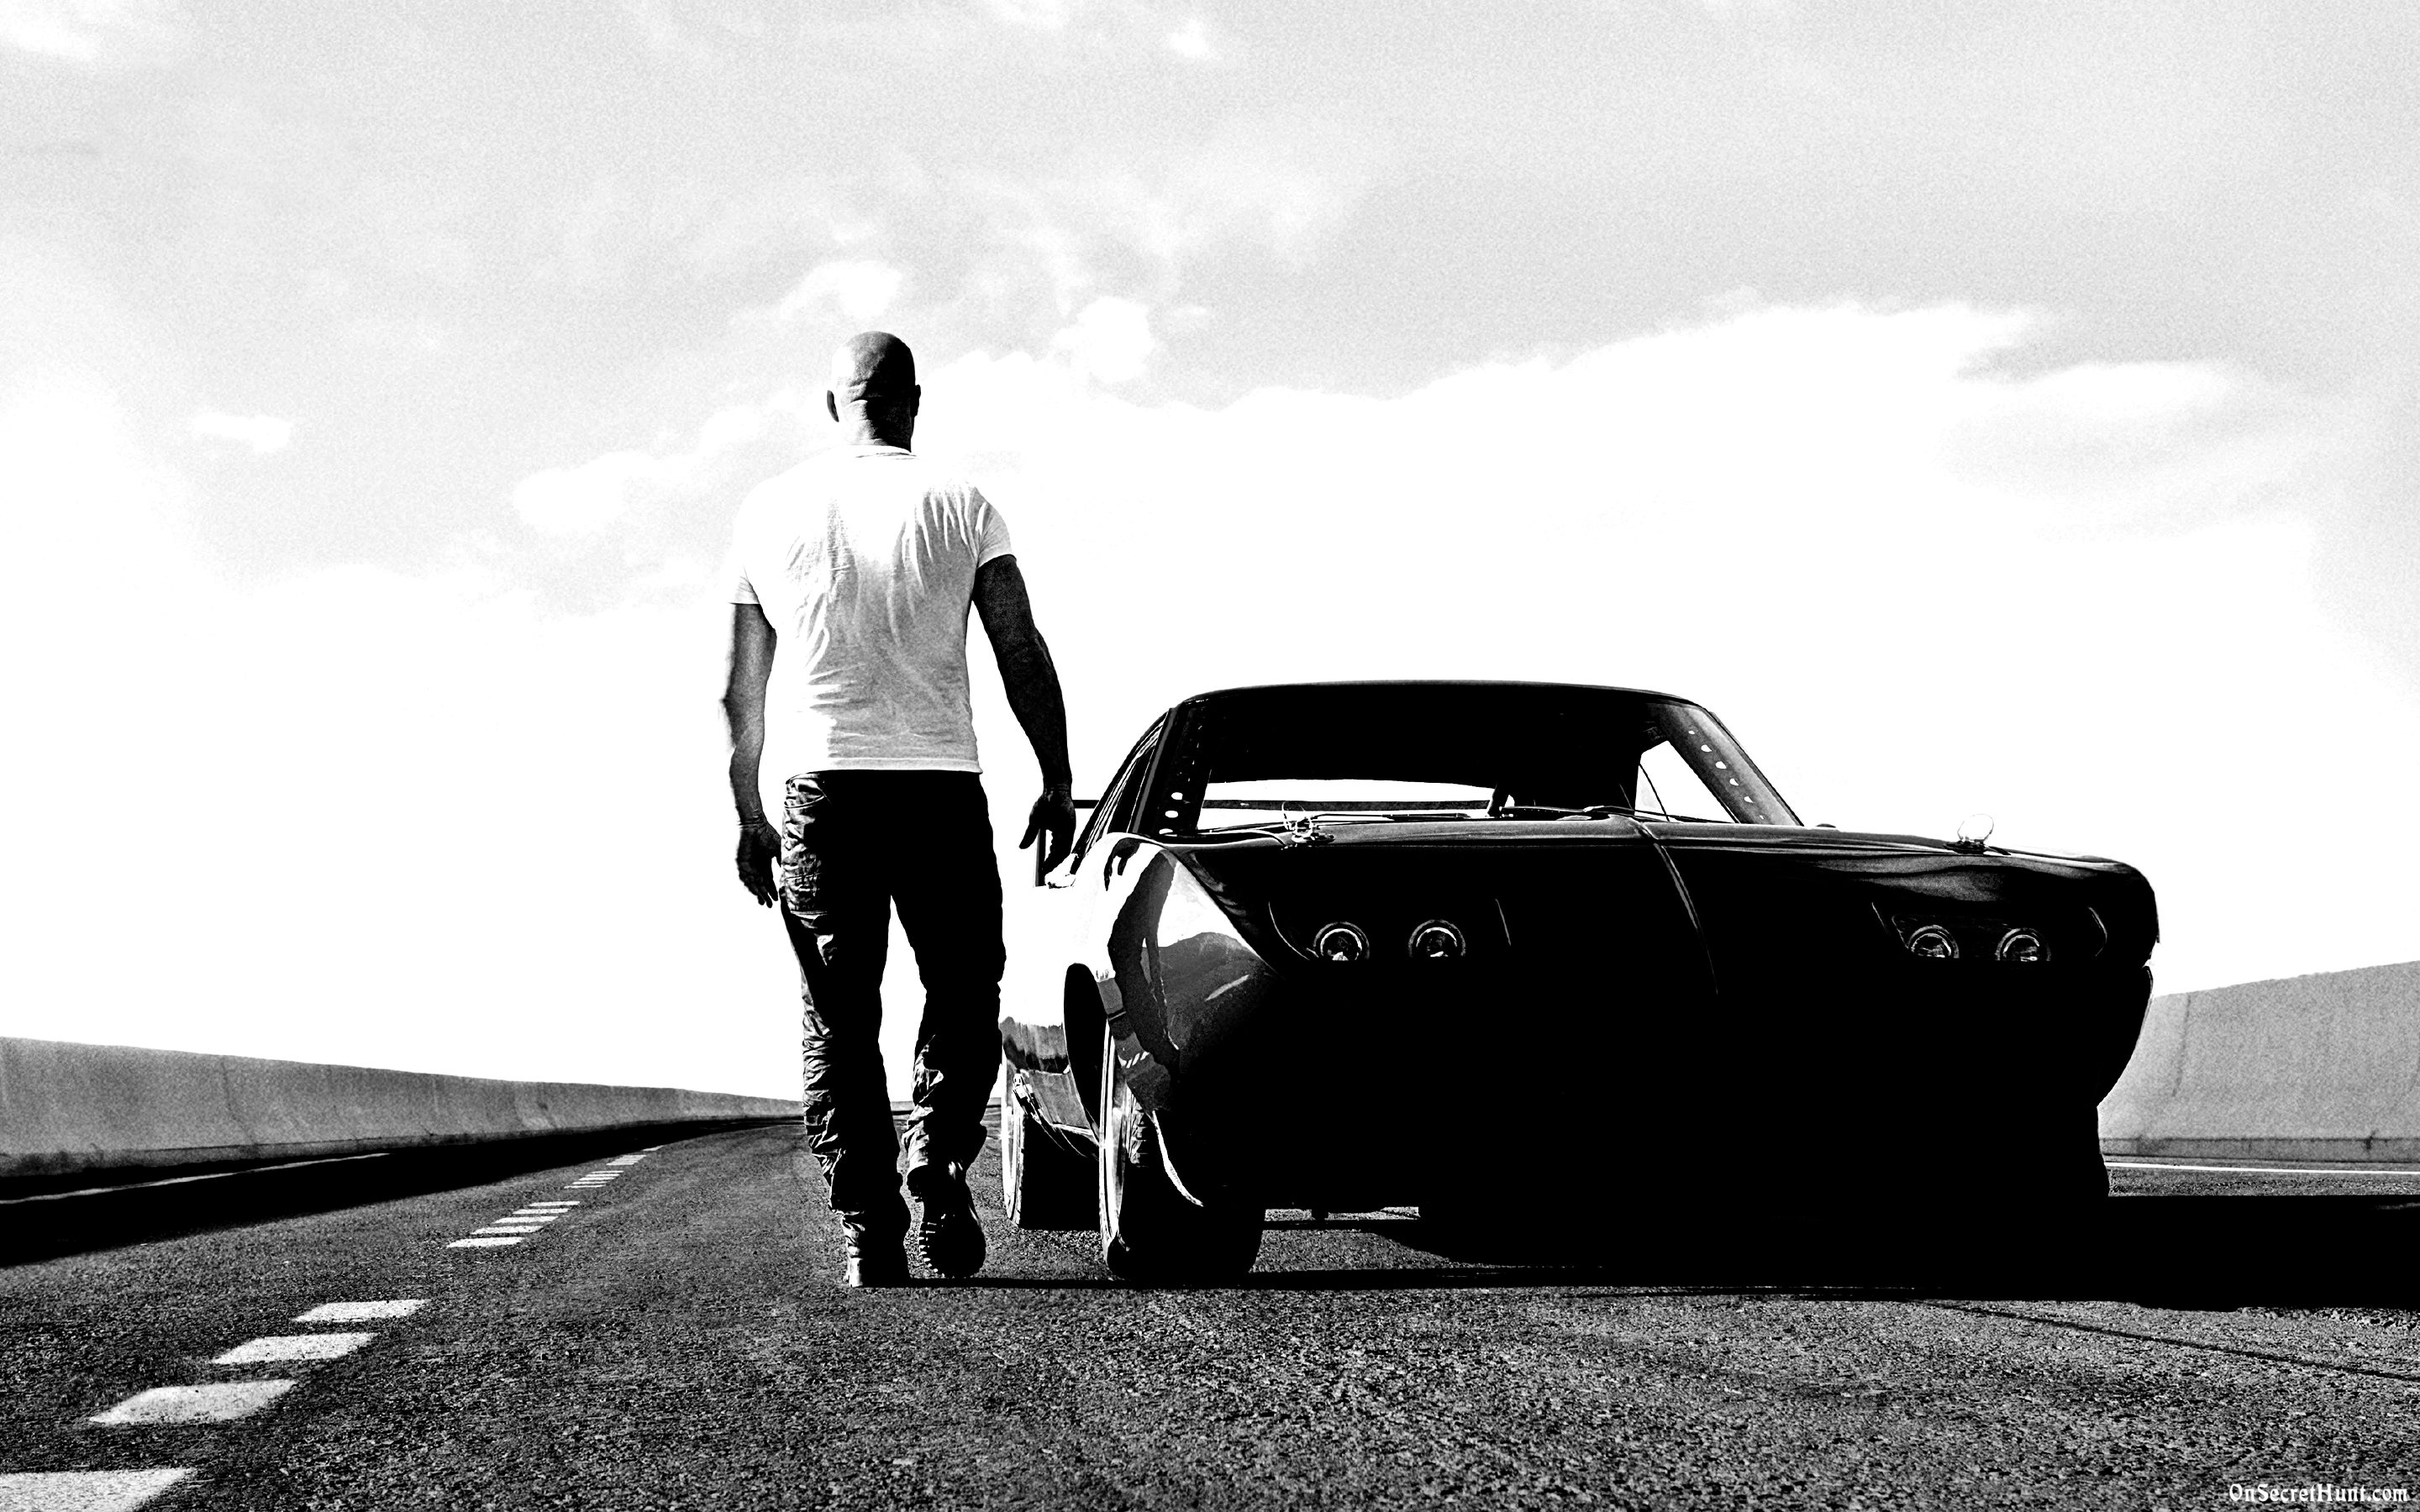 Wallpaper Wednesday Gets Fast And Furious Action A Go Go